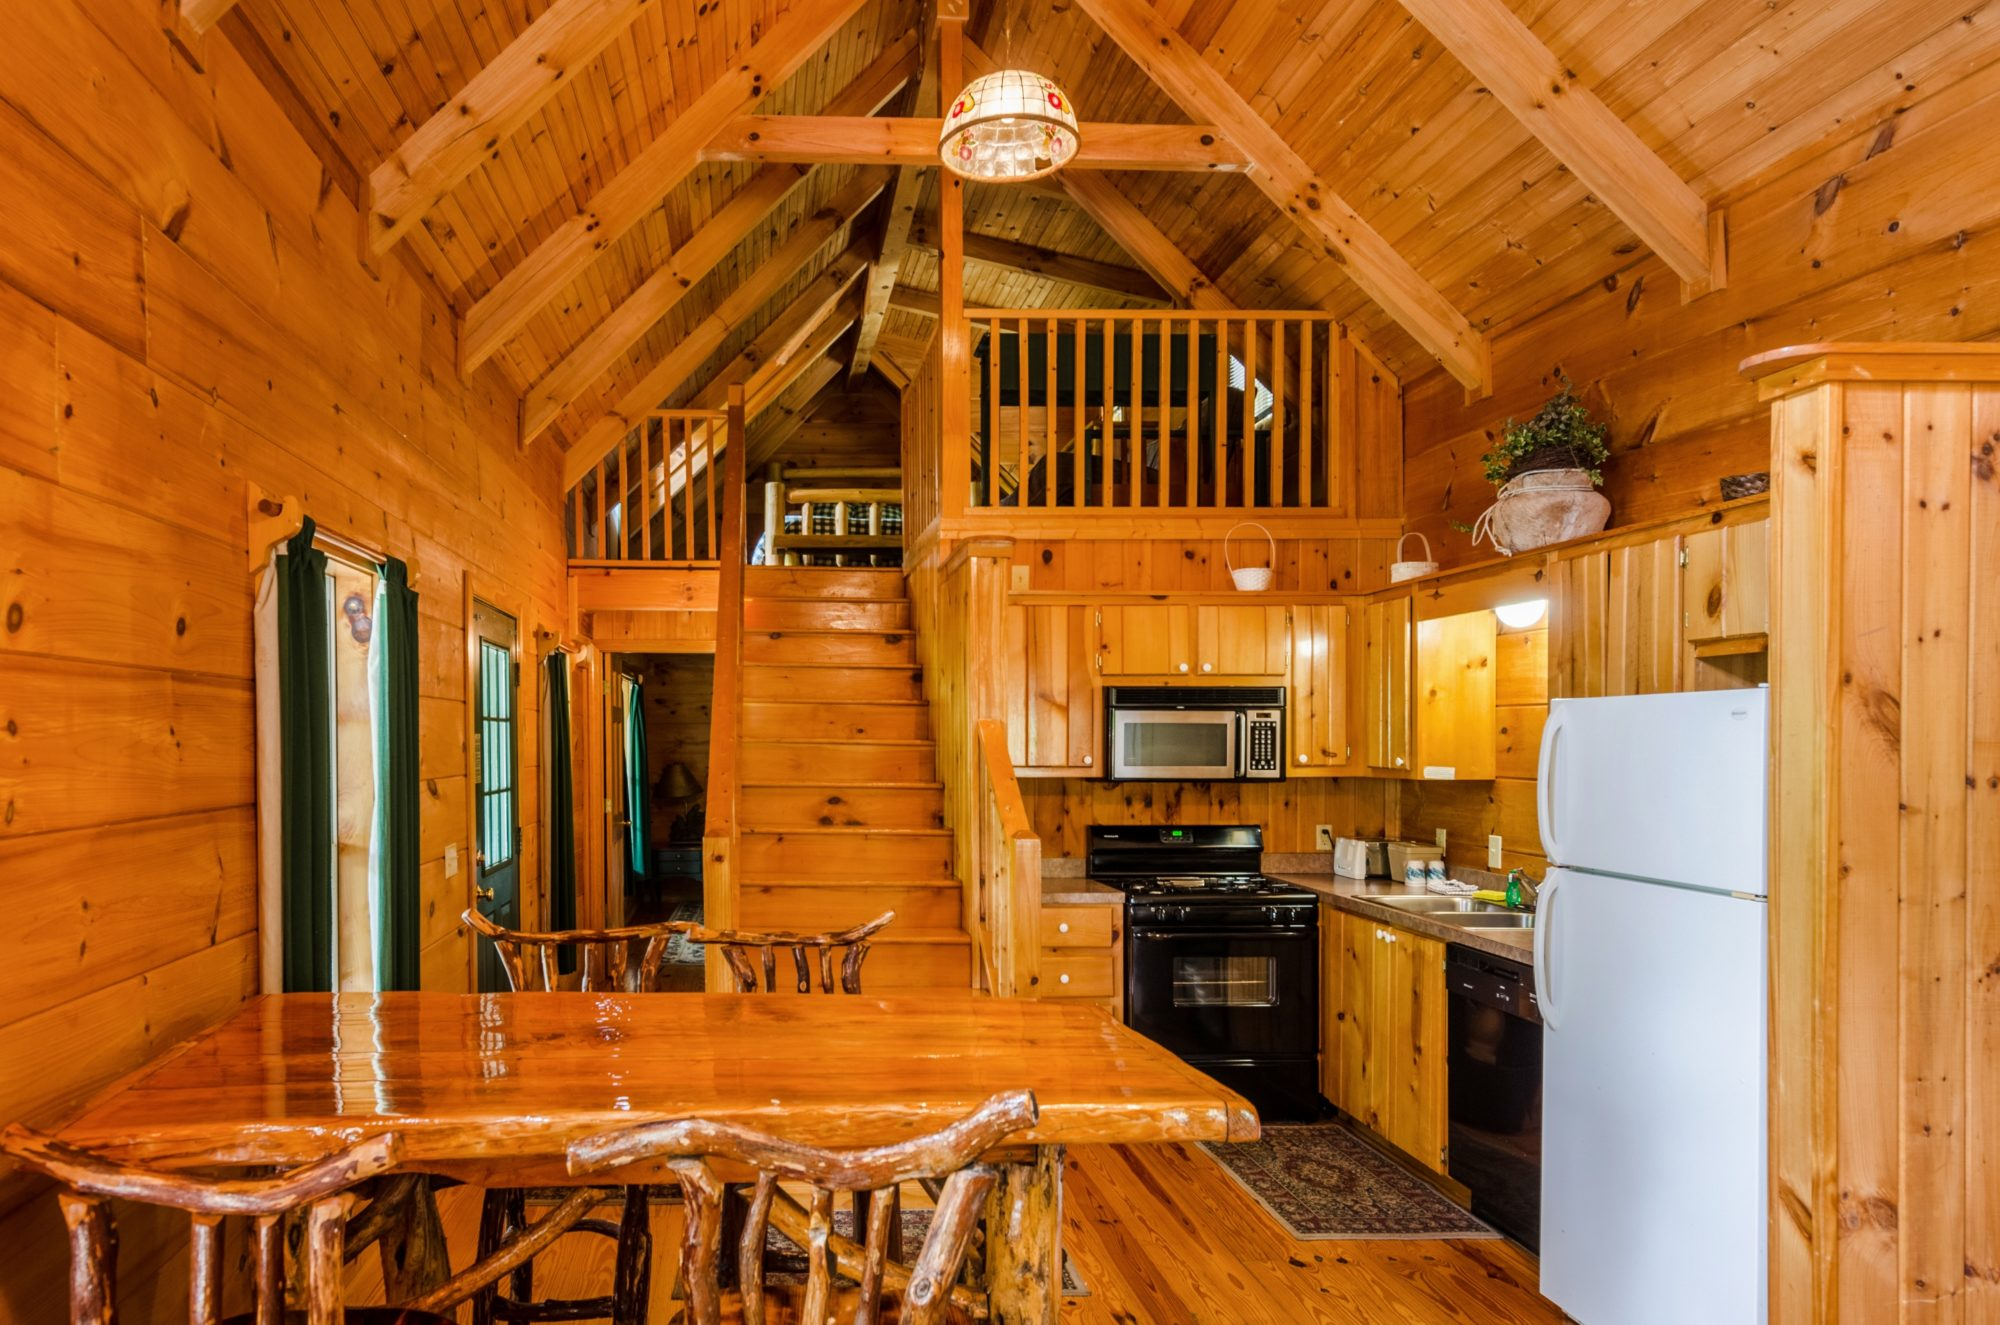 Rear door entrance with side hallway, rustic wooden tables and chairs, wooden stairs leading to a bedroom, kitchen area with stove, microwave over stovem wall and base cabinets, double sink, fridge freezer, wooden floor with rugs